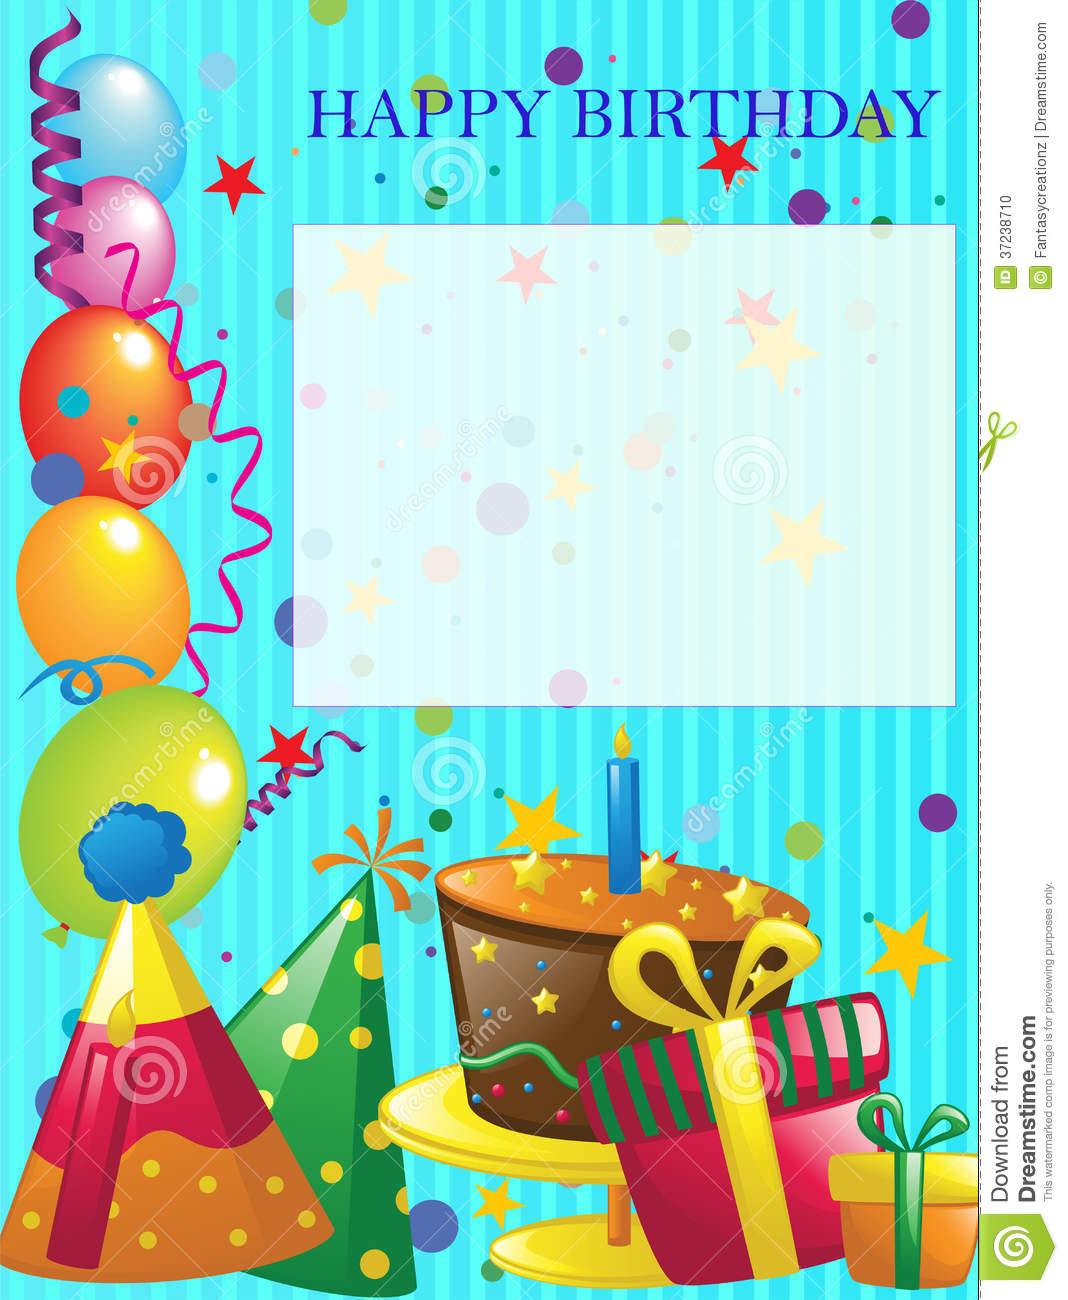 Birthday Invitation Background Designs Pictures to Pin on – Birthday Invitation Background